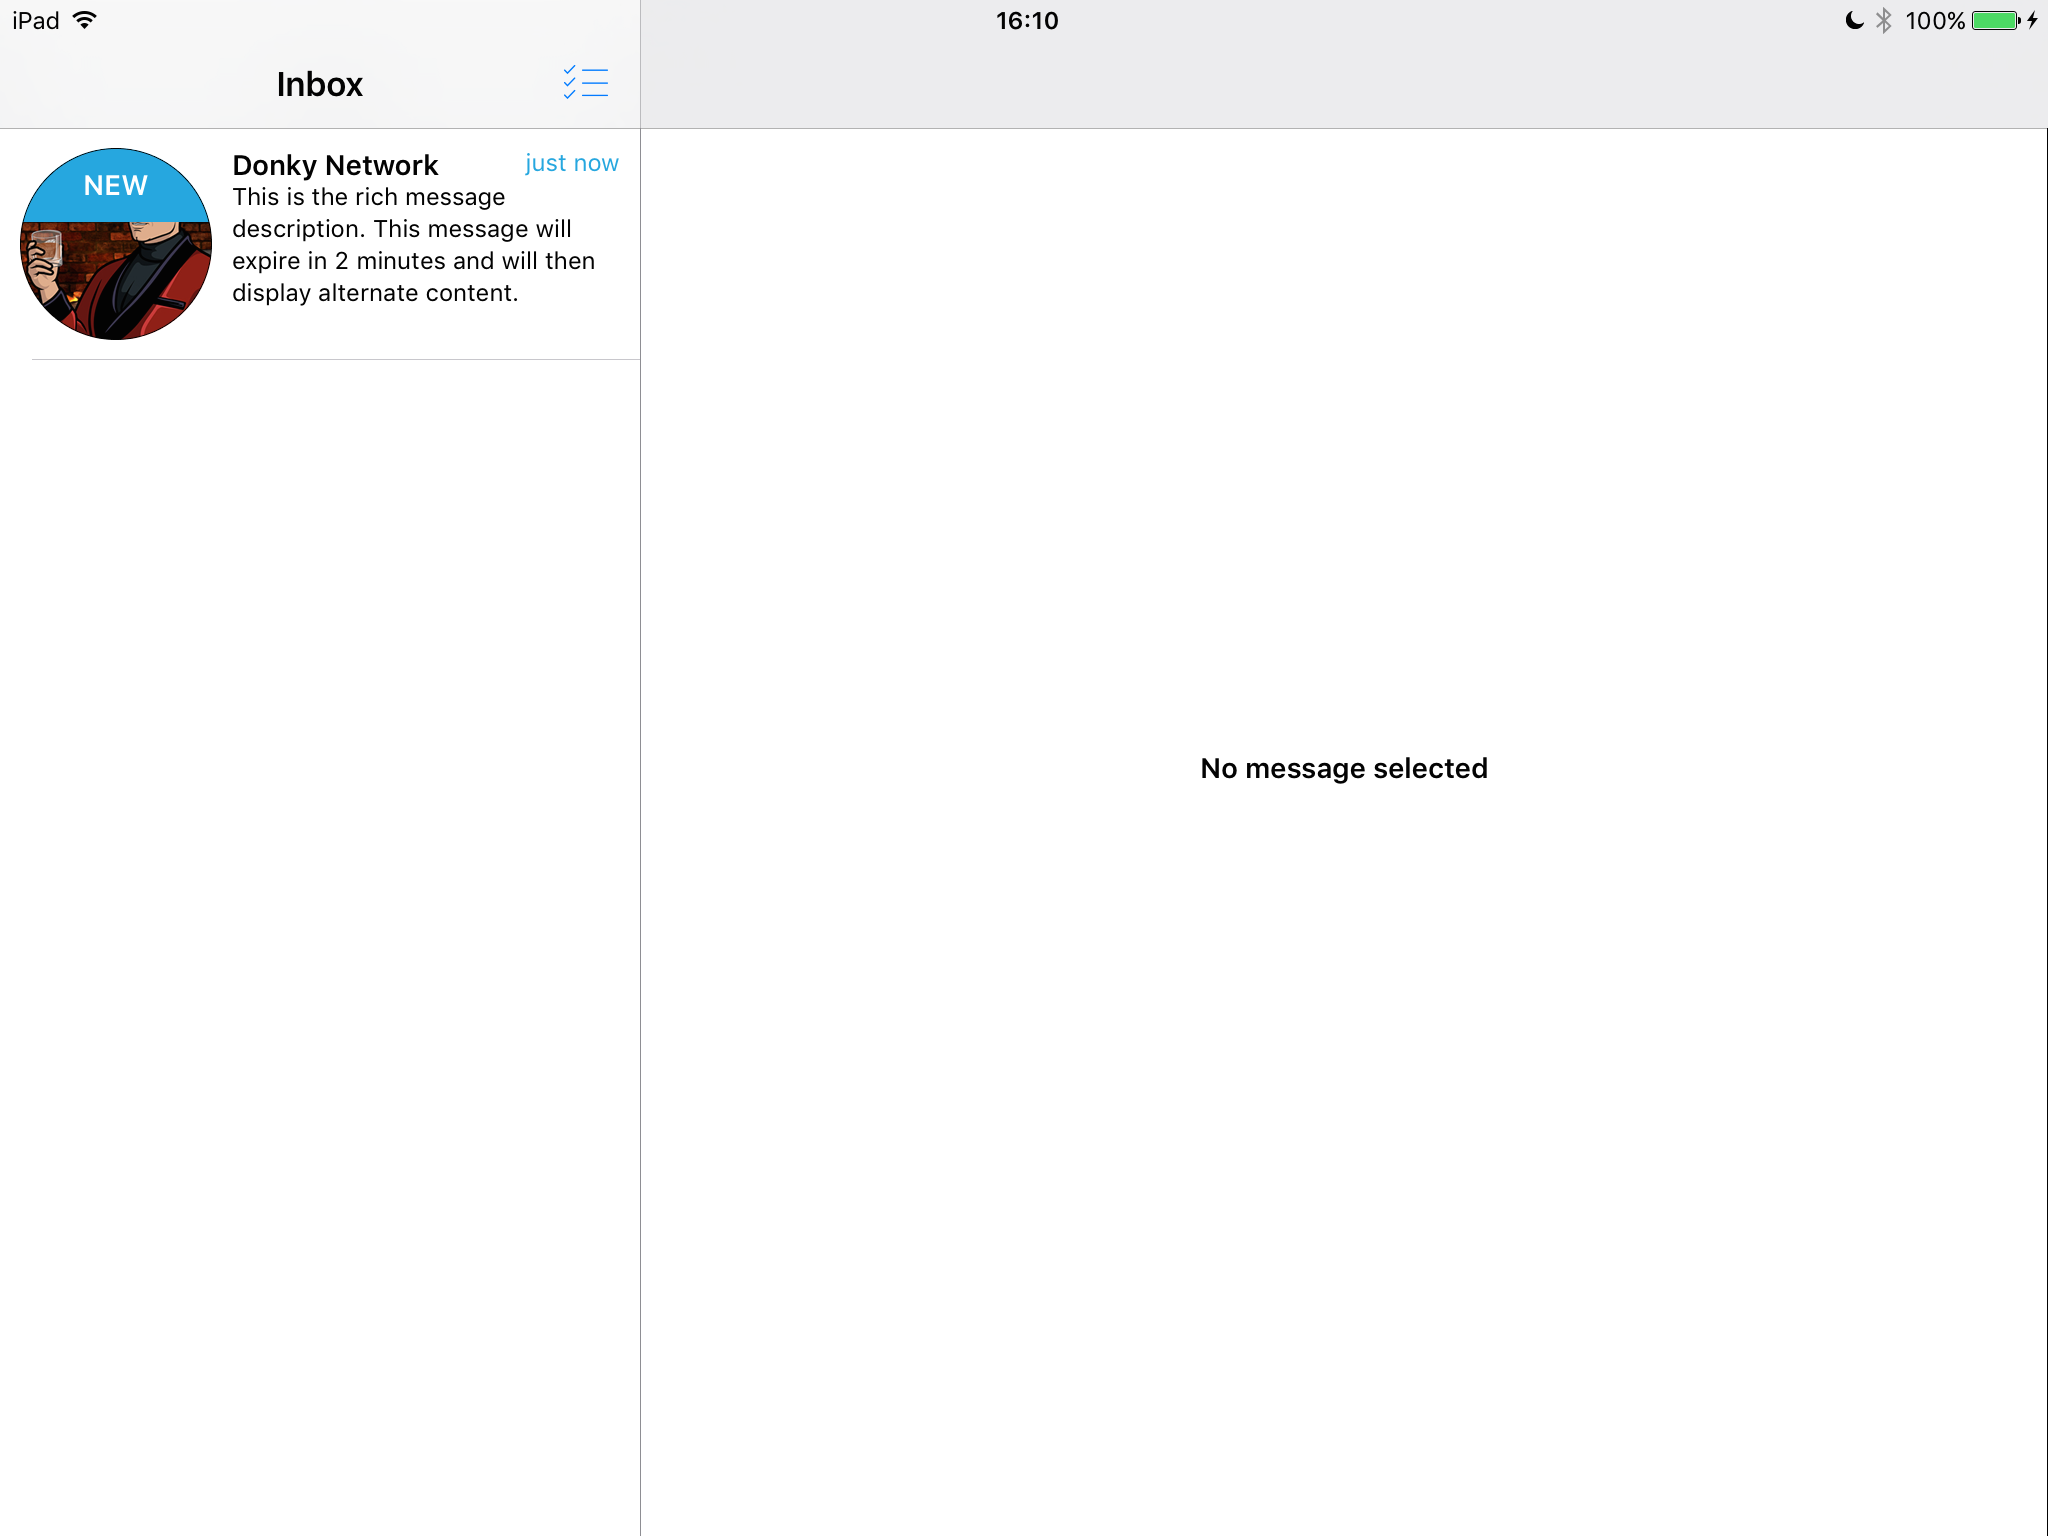 An example of the rich inbox split view on an iPad, iOS 7.0 in Landscape. With an unread and un selected rich message.